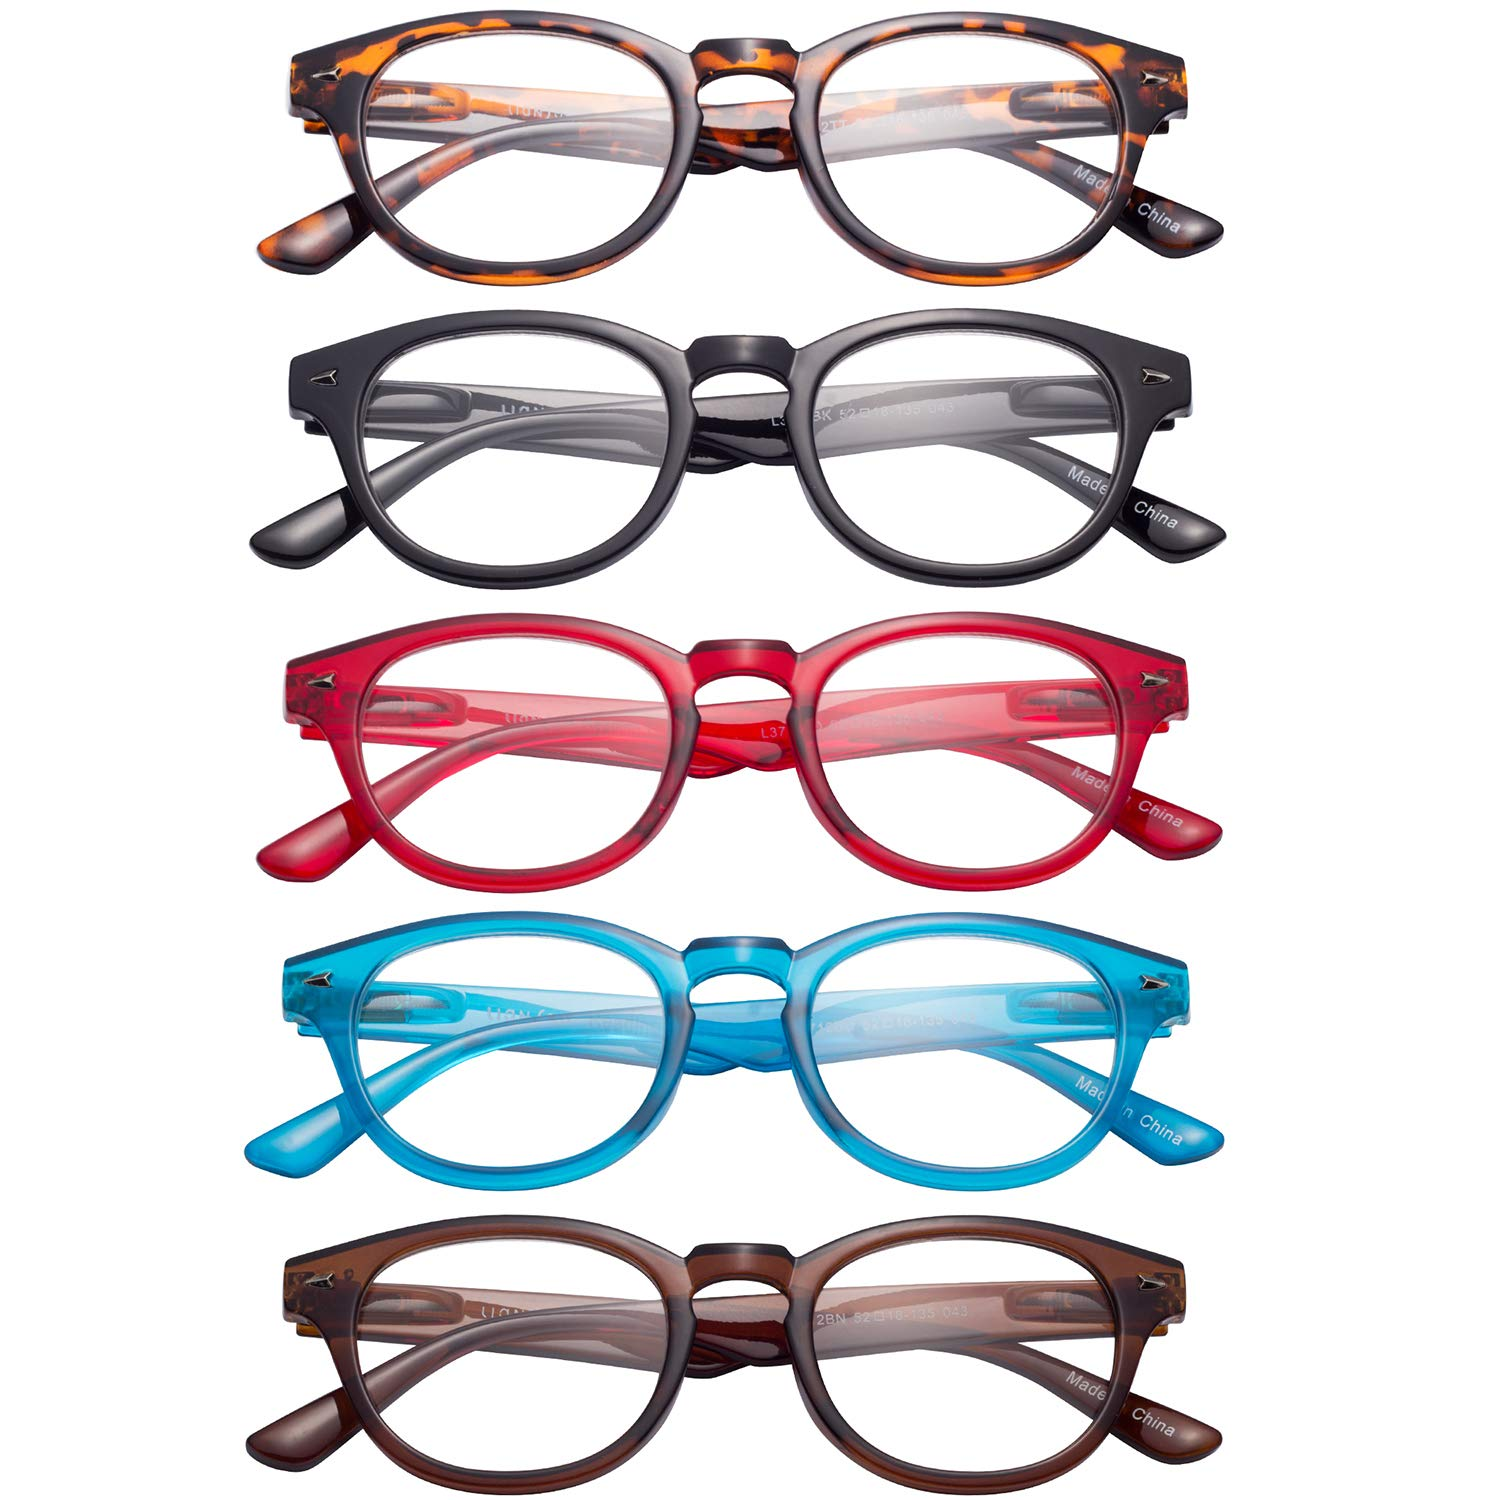 LianSan 5 Pairs Readers Spring Hinged Round Reading Glasses for Men and Women L3712 Black Red Blue Brown Demi